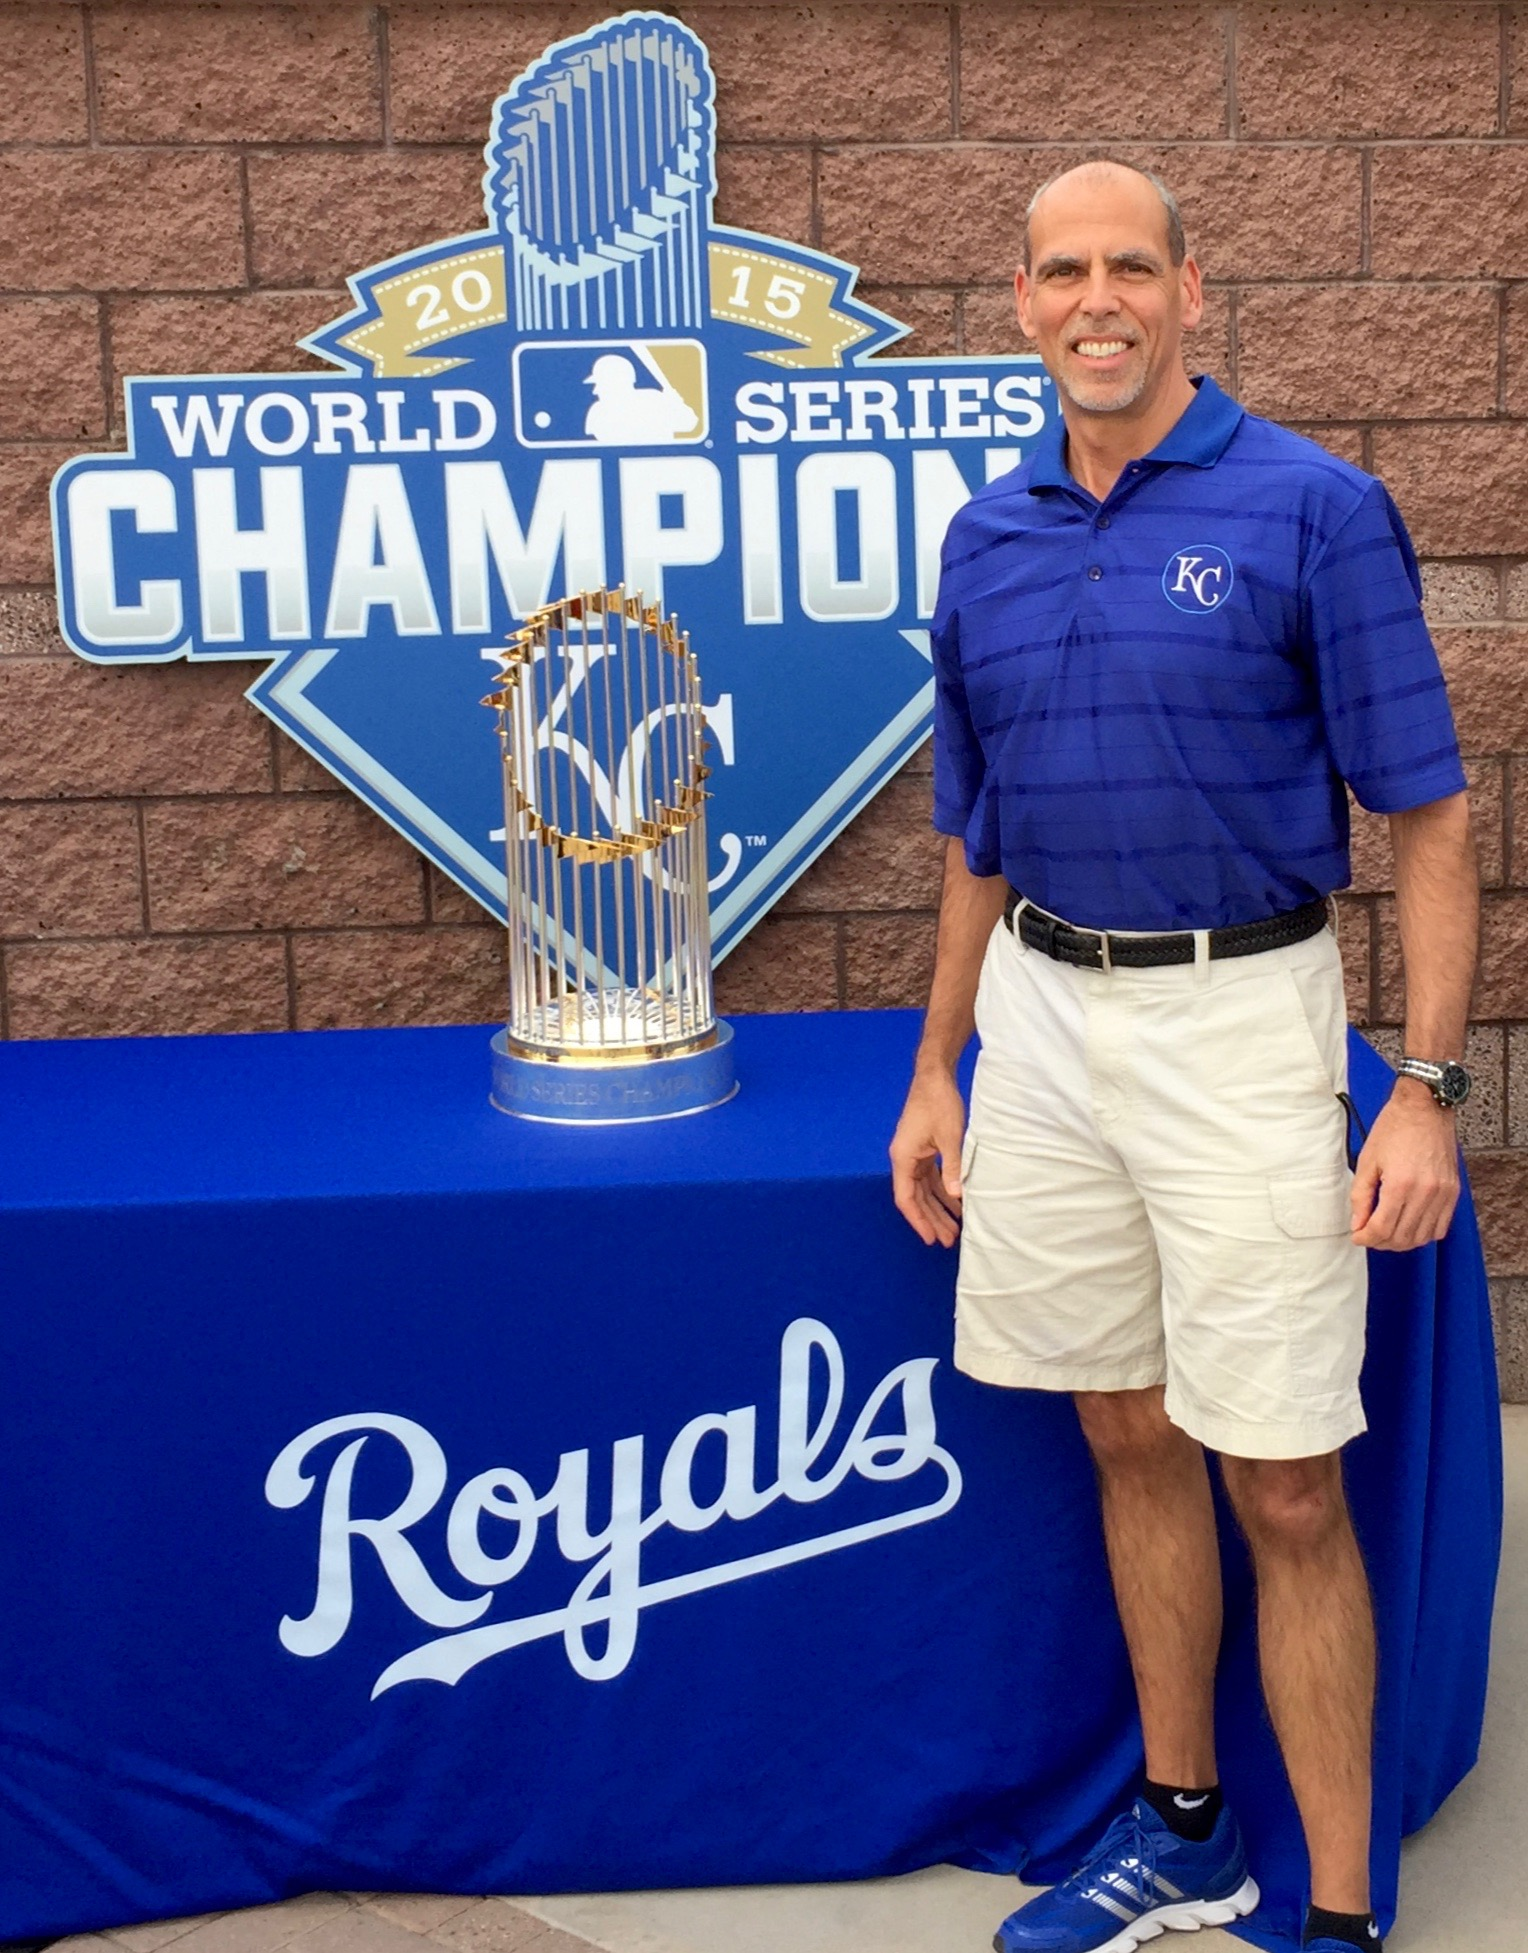 2015 World Series championship Trophy